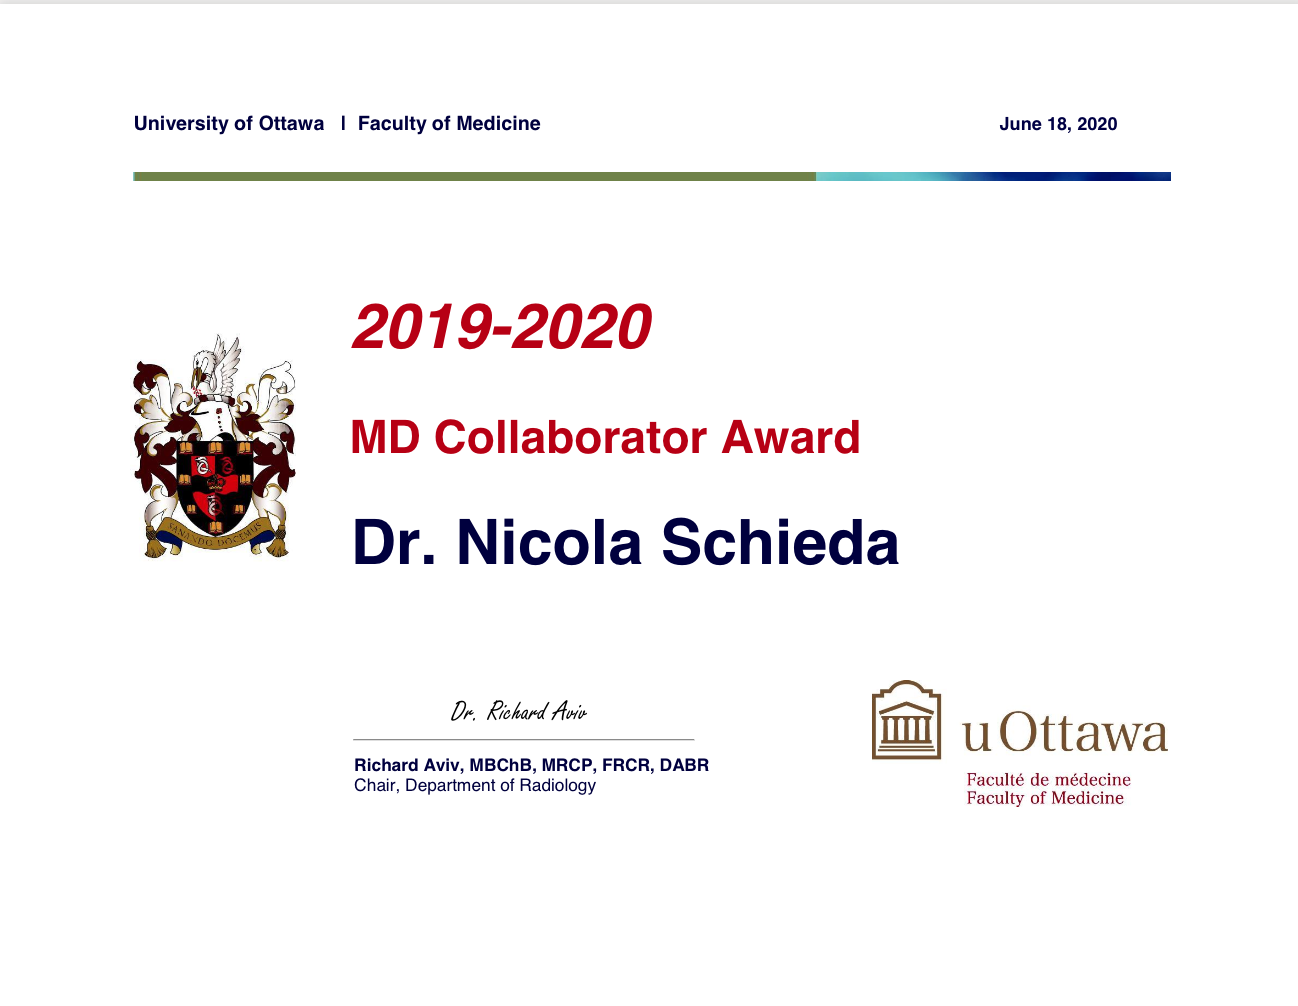 2019-2020 MD Collaborator Award. Winner is Dr. Nicola Schieda